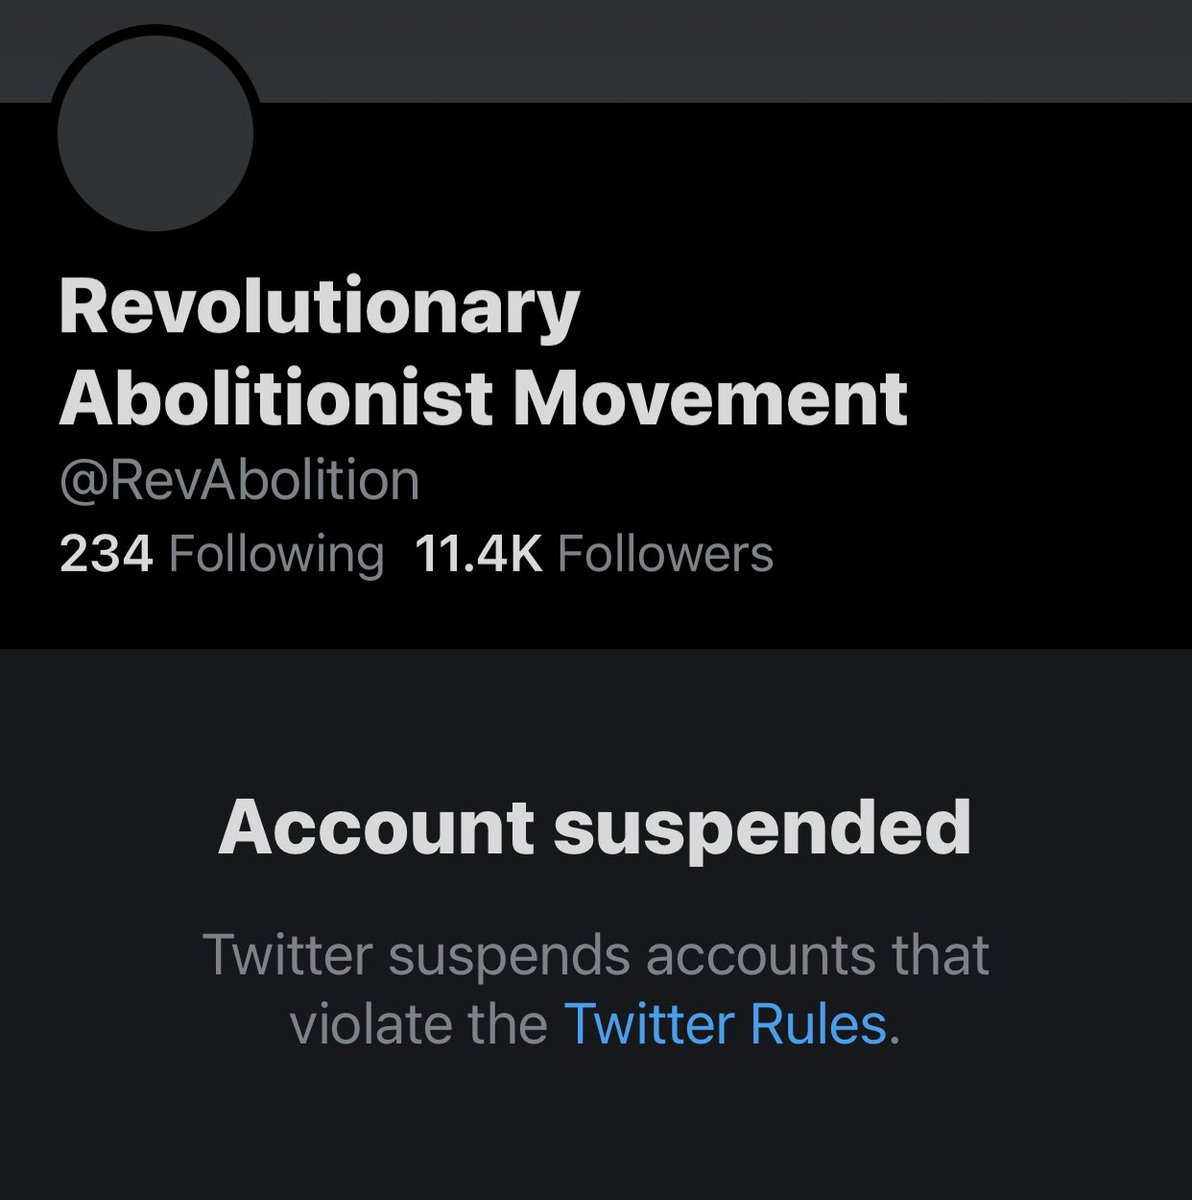 Now that #antifa is being belligerent either as a false flag to act as a way for @theDemocrats to distance themselves from this previous close association of communists or the group is just out of control - ALL OF THE SUDDEN AFTER YEARS OF DOING NOTHING TWITTER DOES SOMETHING